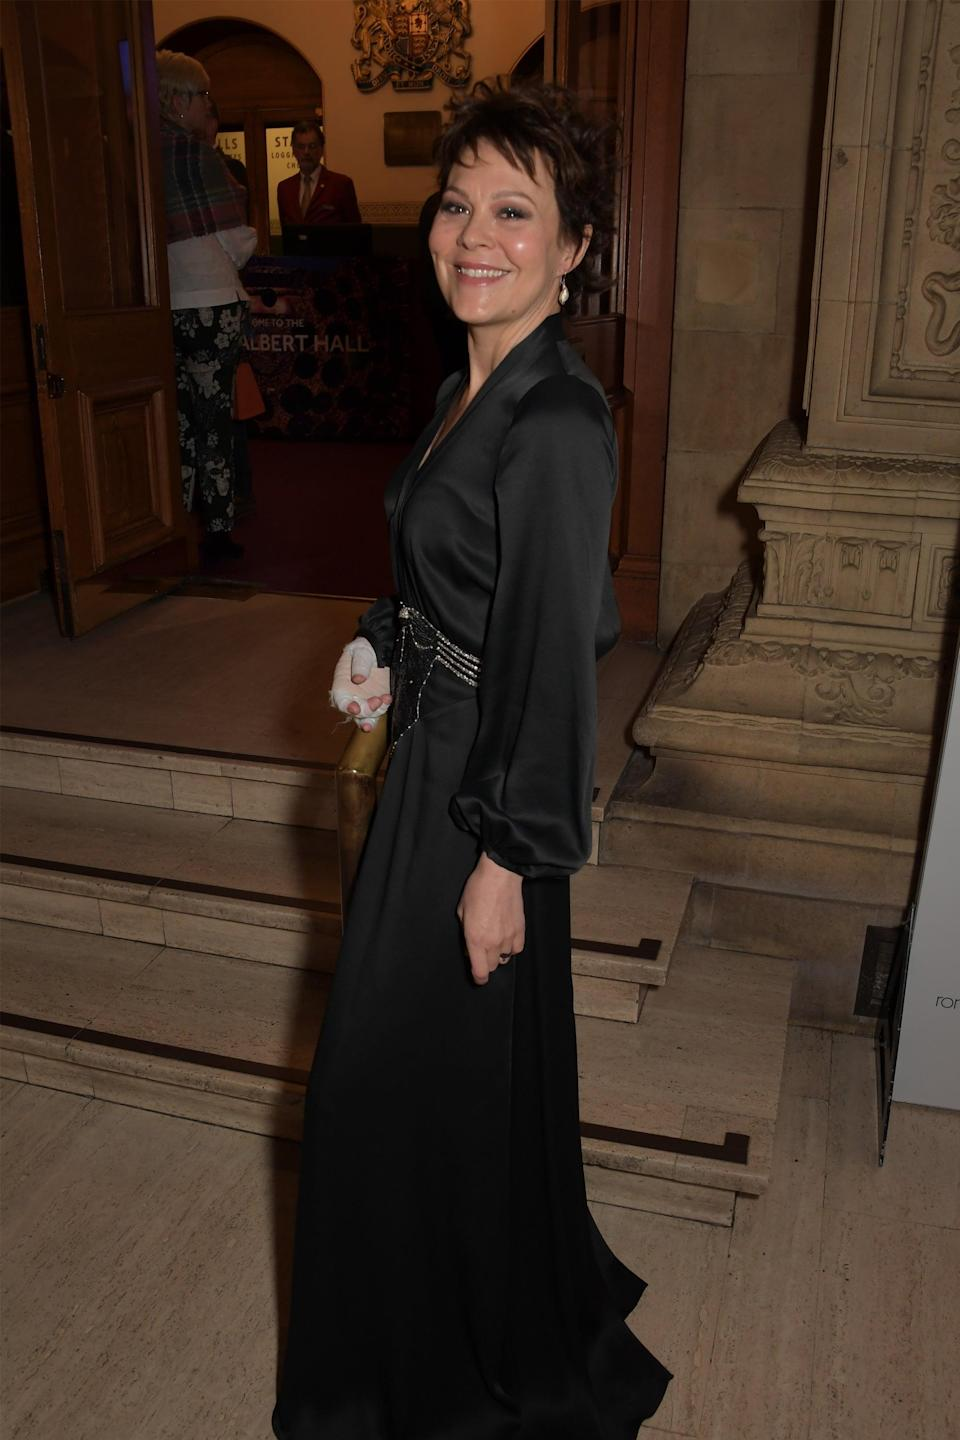 """<strong><h2>Helen McCrory Is The Voice Of Stelmaria</h2></strong> <br> <strong>Who Is Stelmaria?<br></strong>Lord Asriel's dæmon, a snow leopard, who is strong and intelligent. She has a hold over Roger Parslow's own dæmon. <br> <br>McCroy is a stage, screen, and television actress who is married to fellow actor Damian Lewis. You might recognize her from <em>Harry Potter and the Deathly Hallows</em> where she played Narcissa Malfoy, or <em>Peaky Blinders</em> where she plays Polly. <br> <br> <span class=""""copyright"""">Photo: David M. Benett/Getty Images.</span>"""